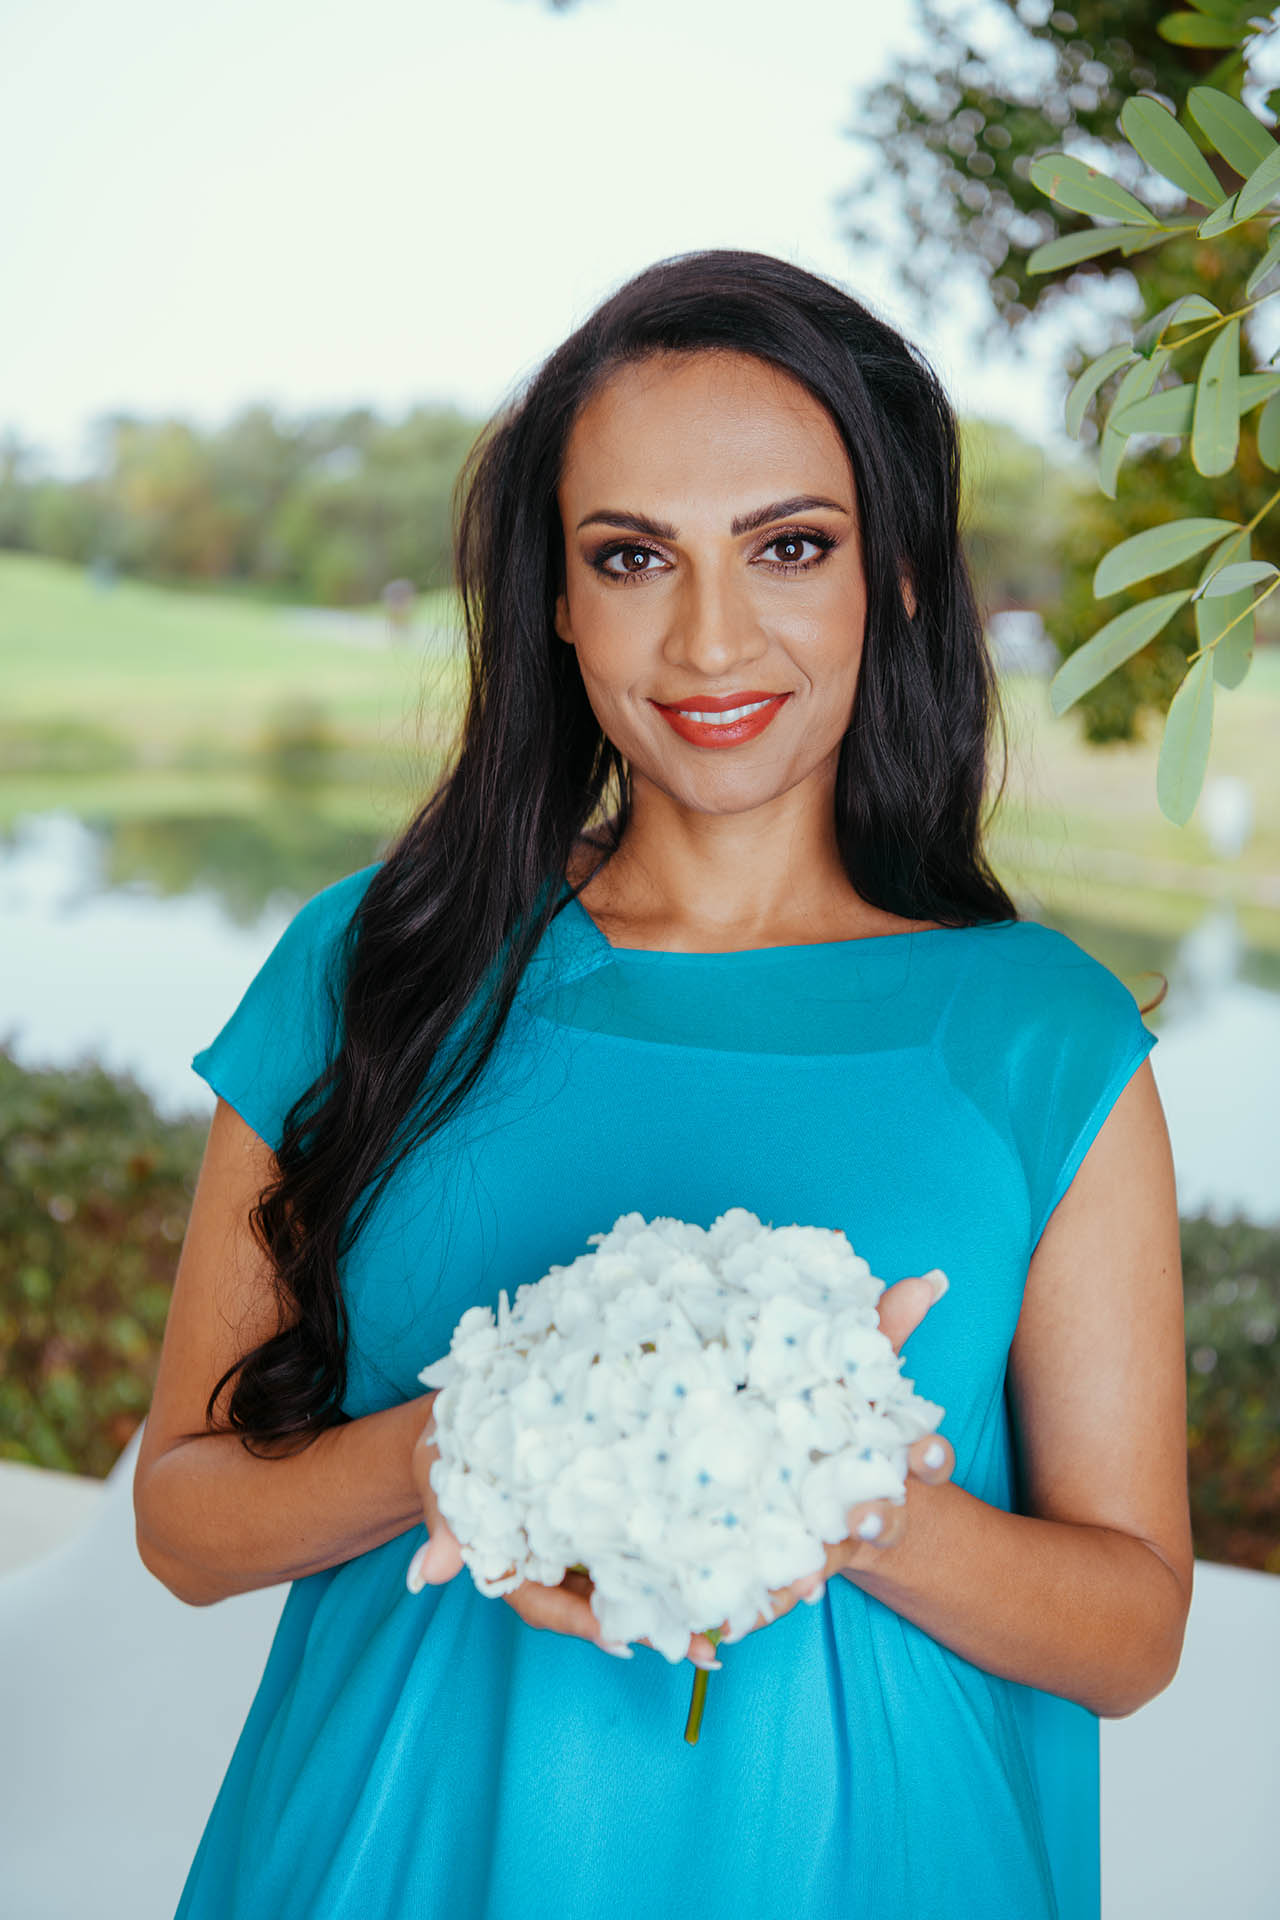 Natasha Rockstrom picture, holding flowers in a blue dress